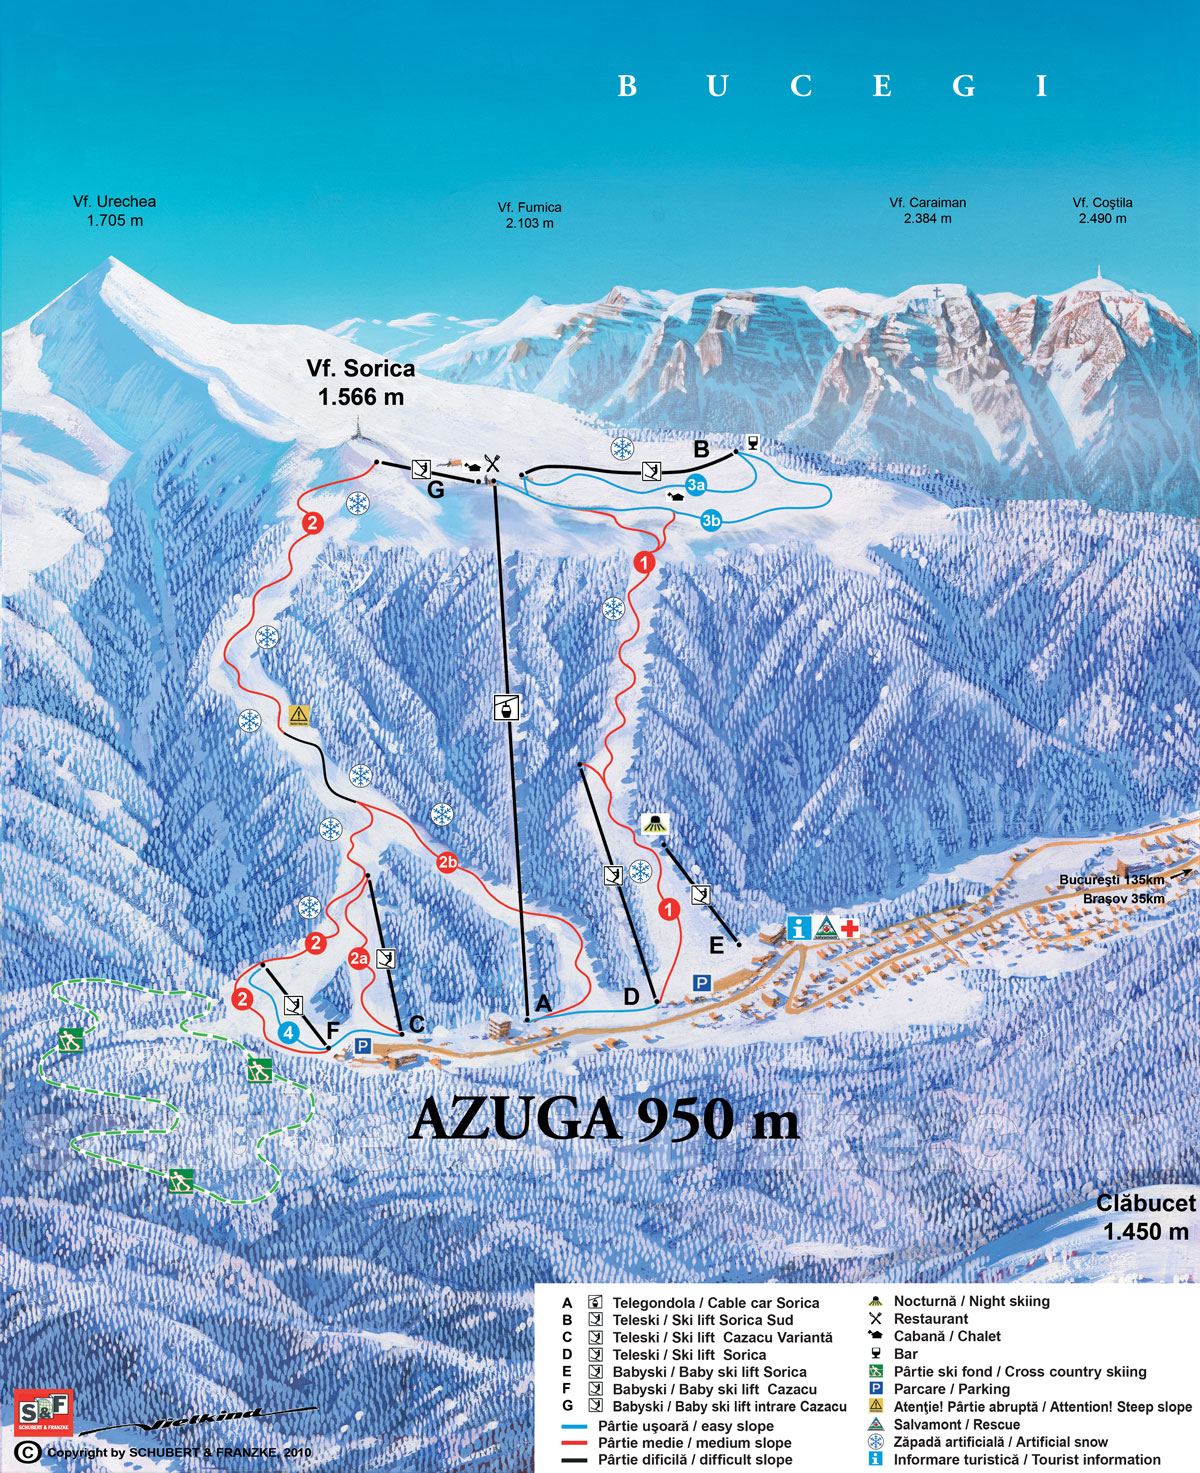 Azuga Piste / Trail Map